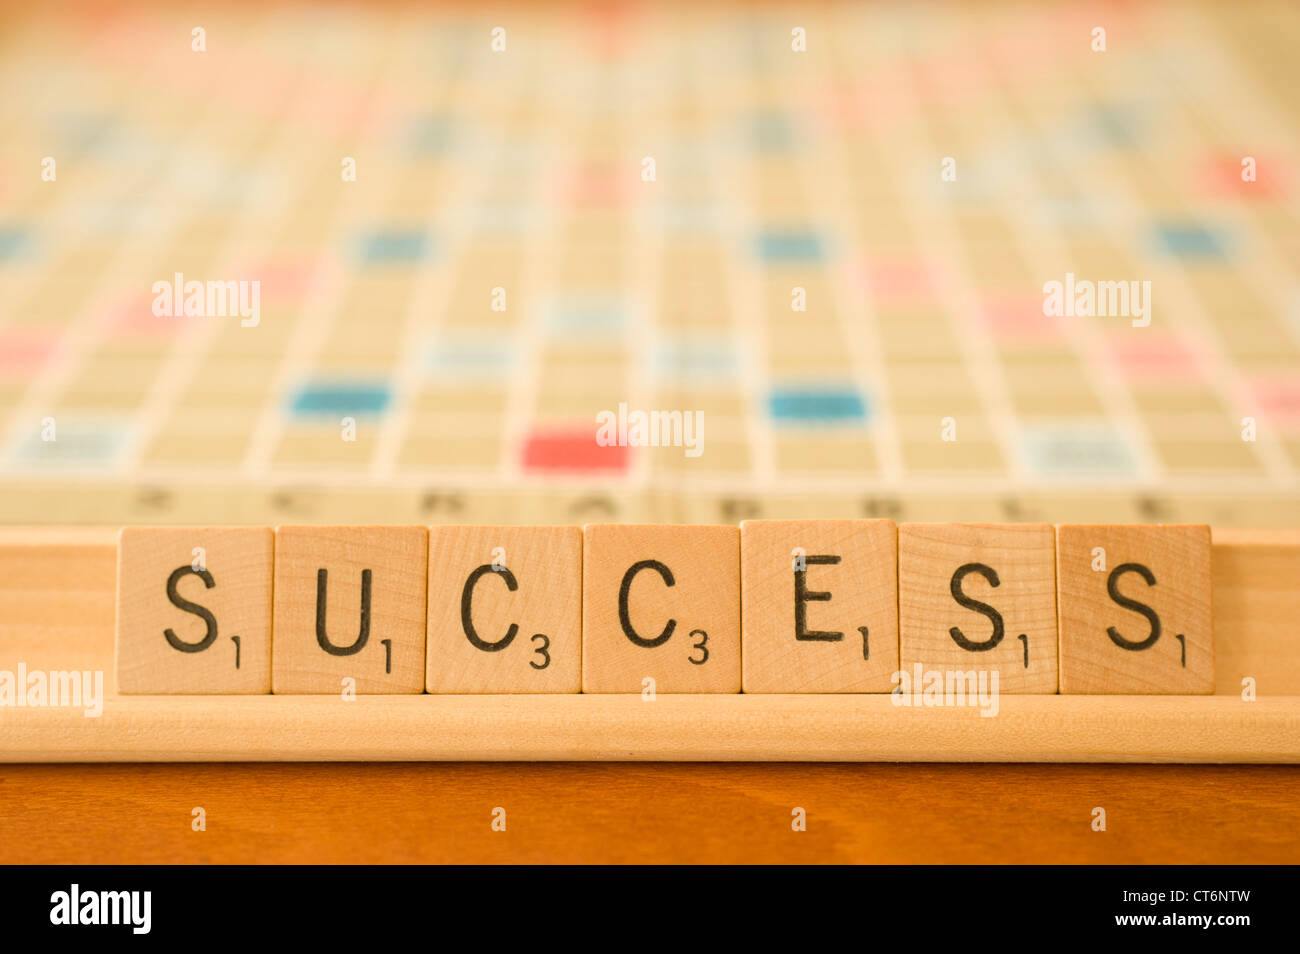 success word spelled with scrabble tiles - Stock Image